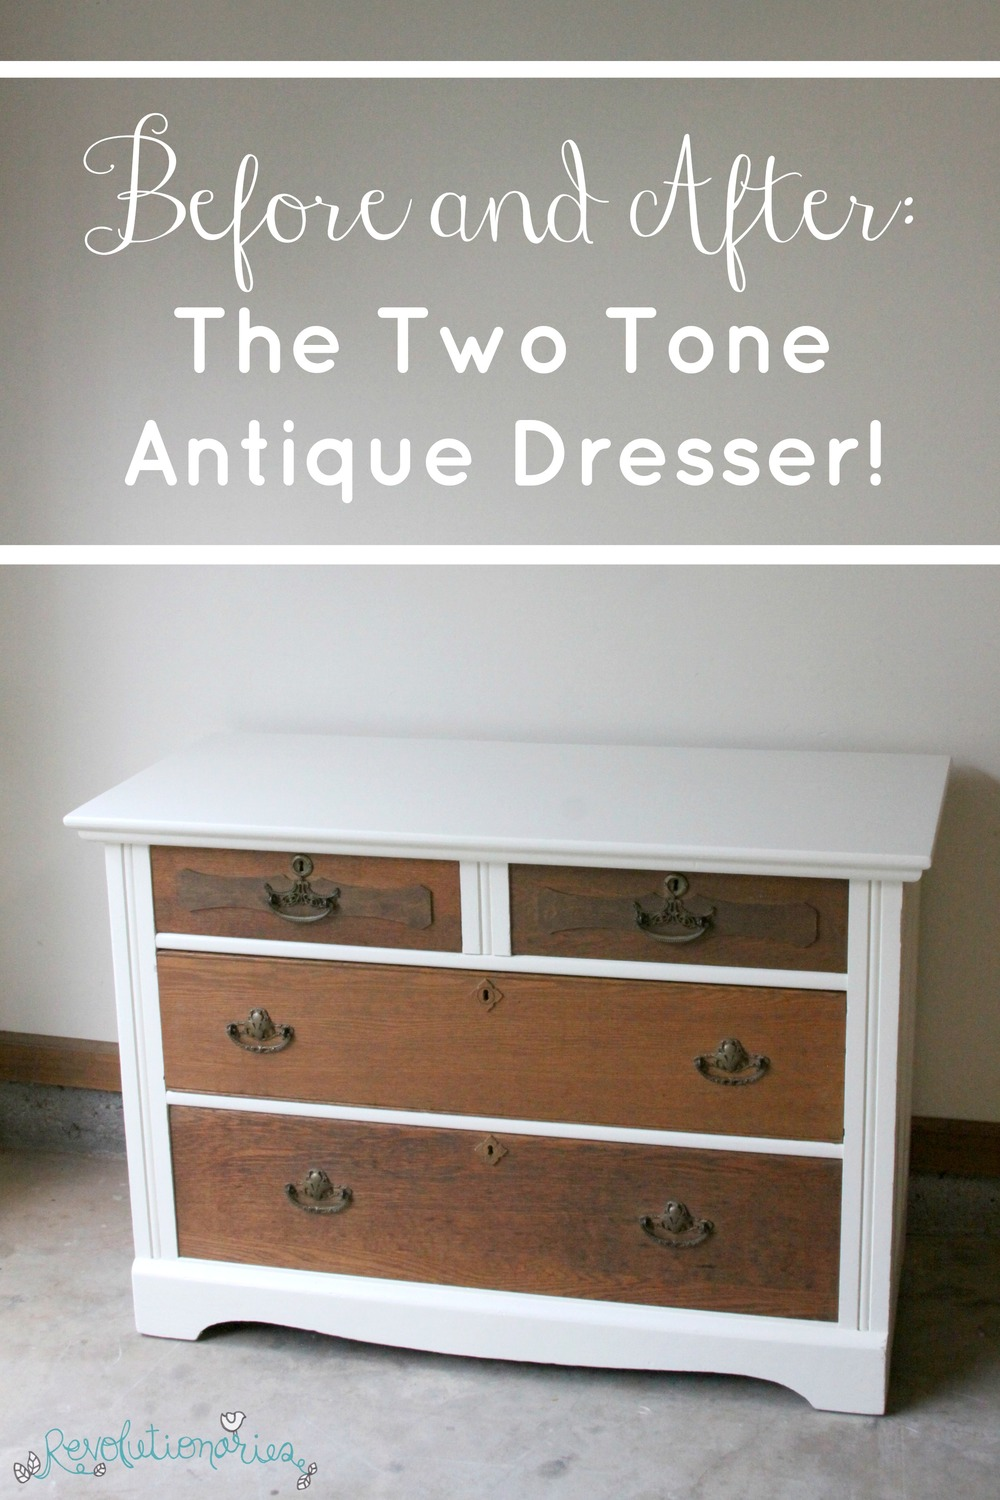 before-and-after-the-two-tone-antique-dresser-2.jpg